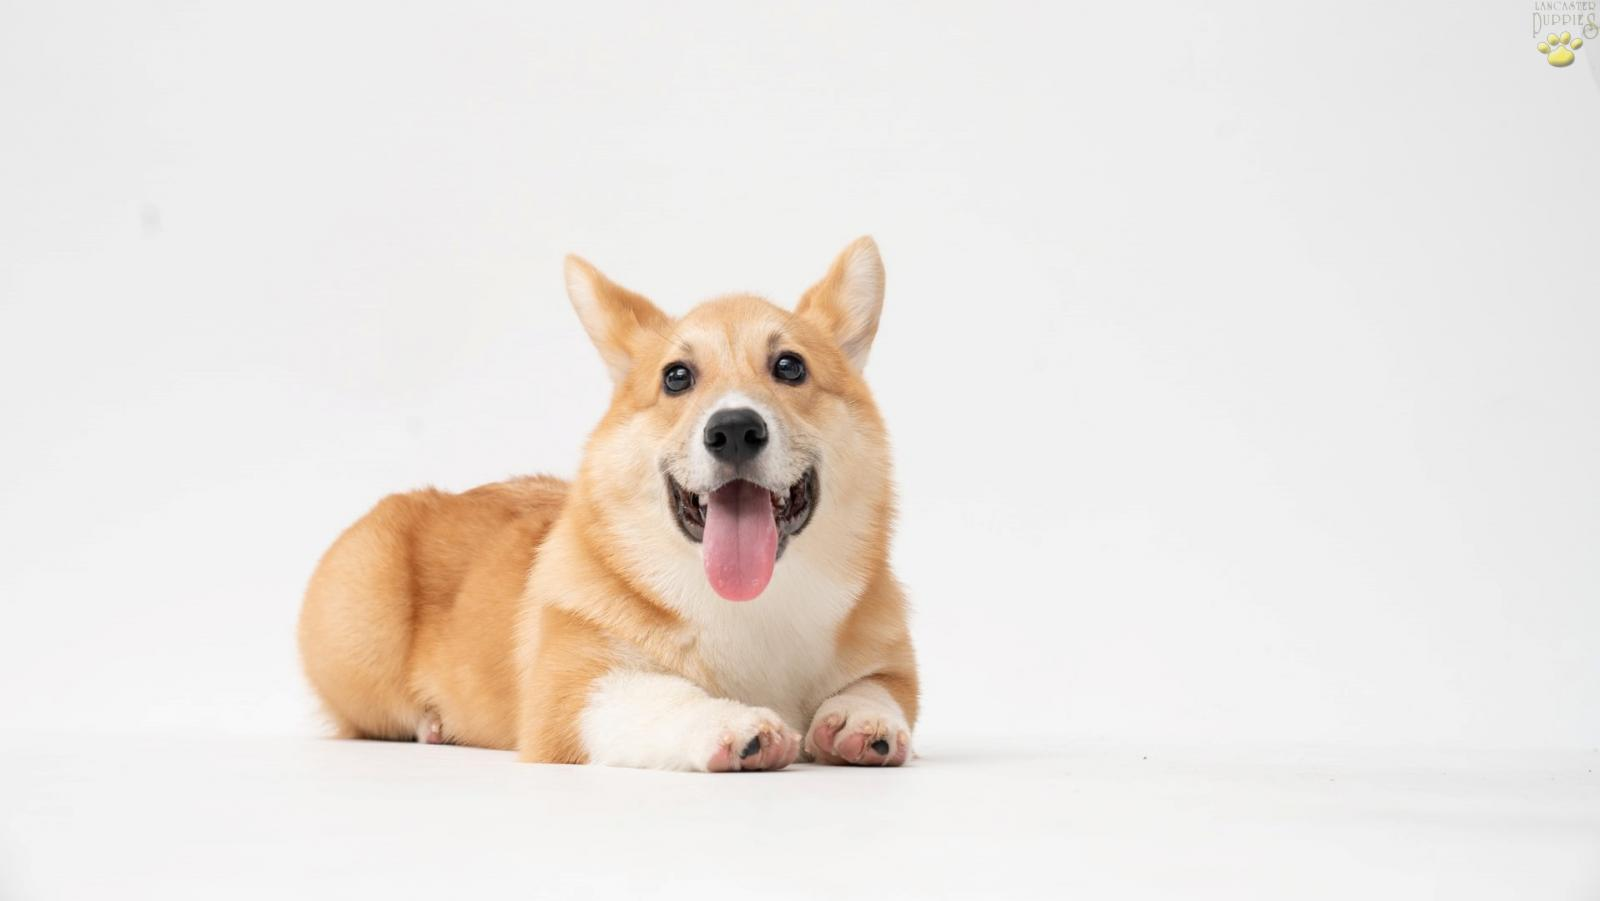 A Pembroke Welsh Corgi with its tongue sticking out